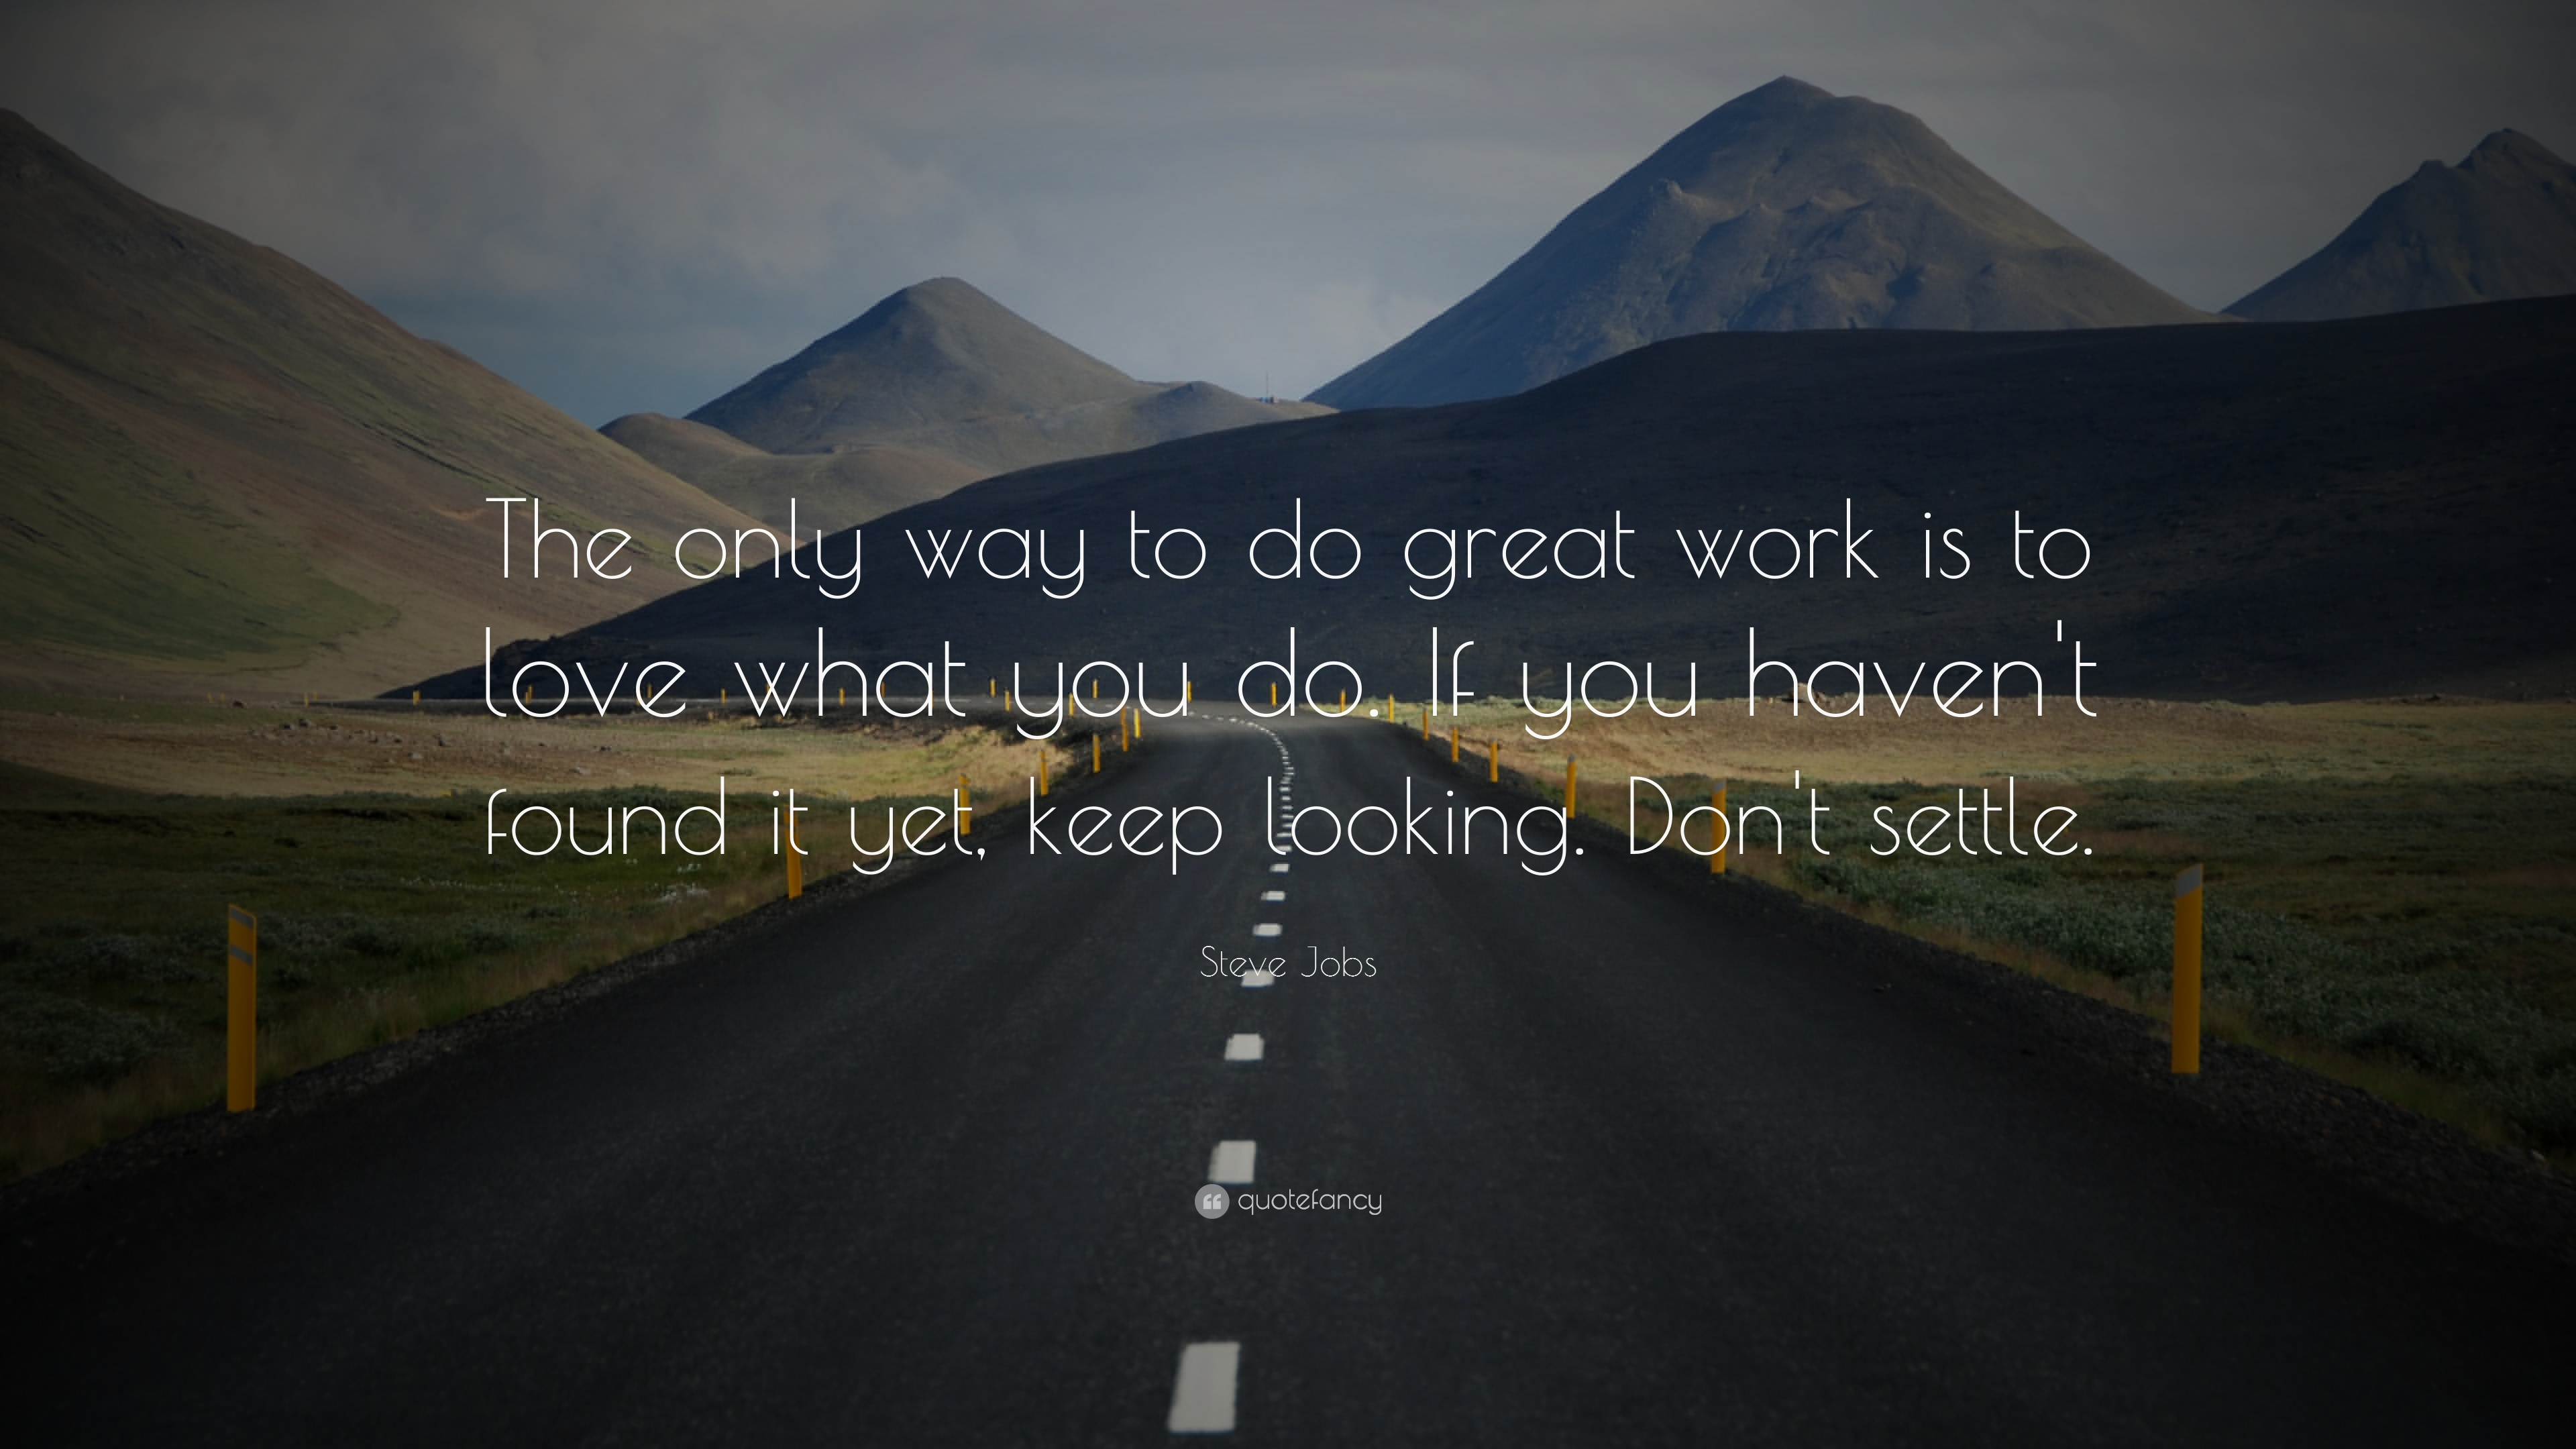 Steve Jobs Quote: U201cThe Only Way To Do Great Work Is To Love What